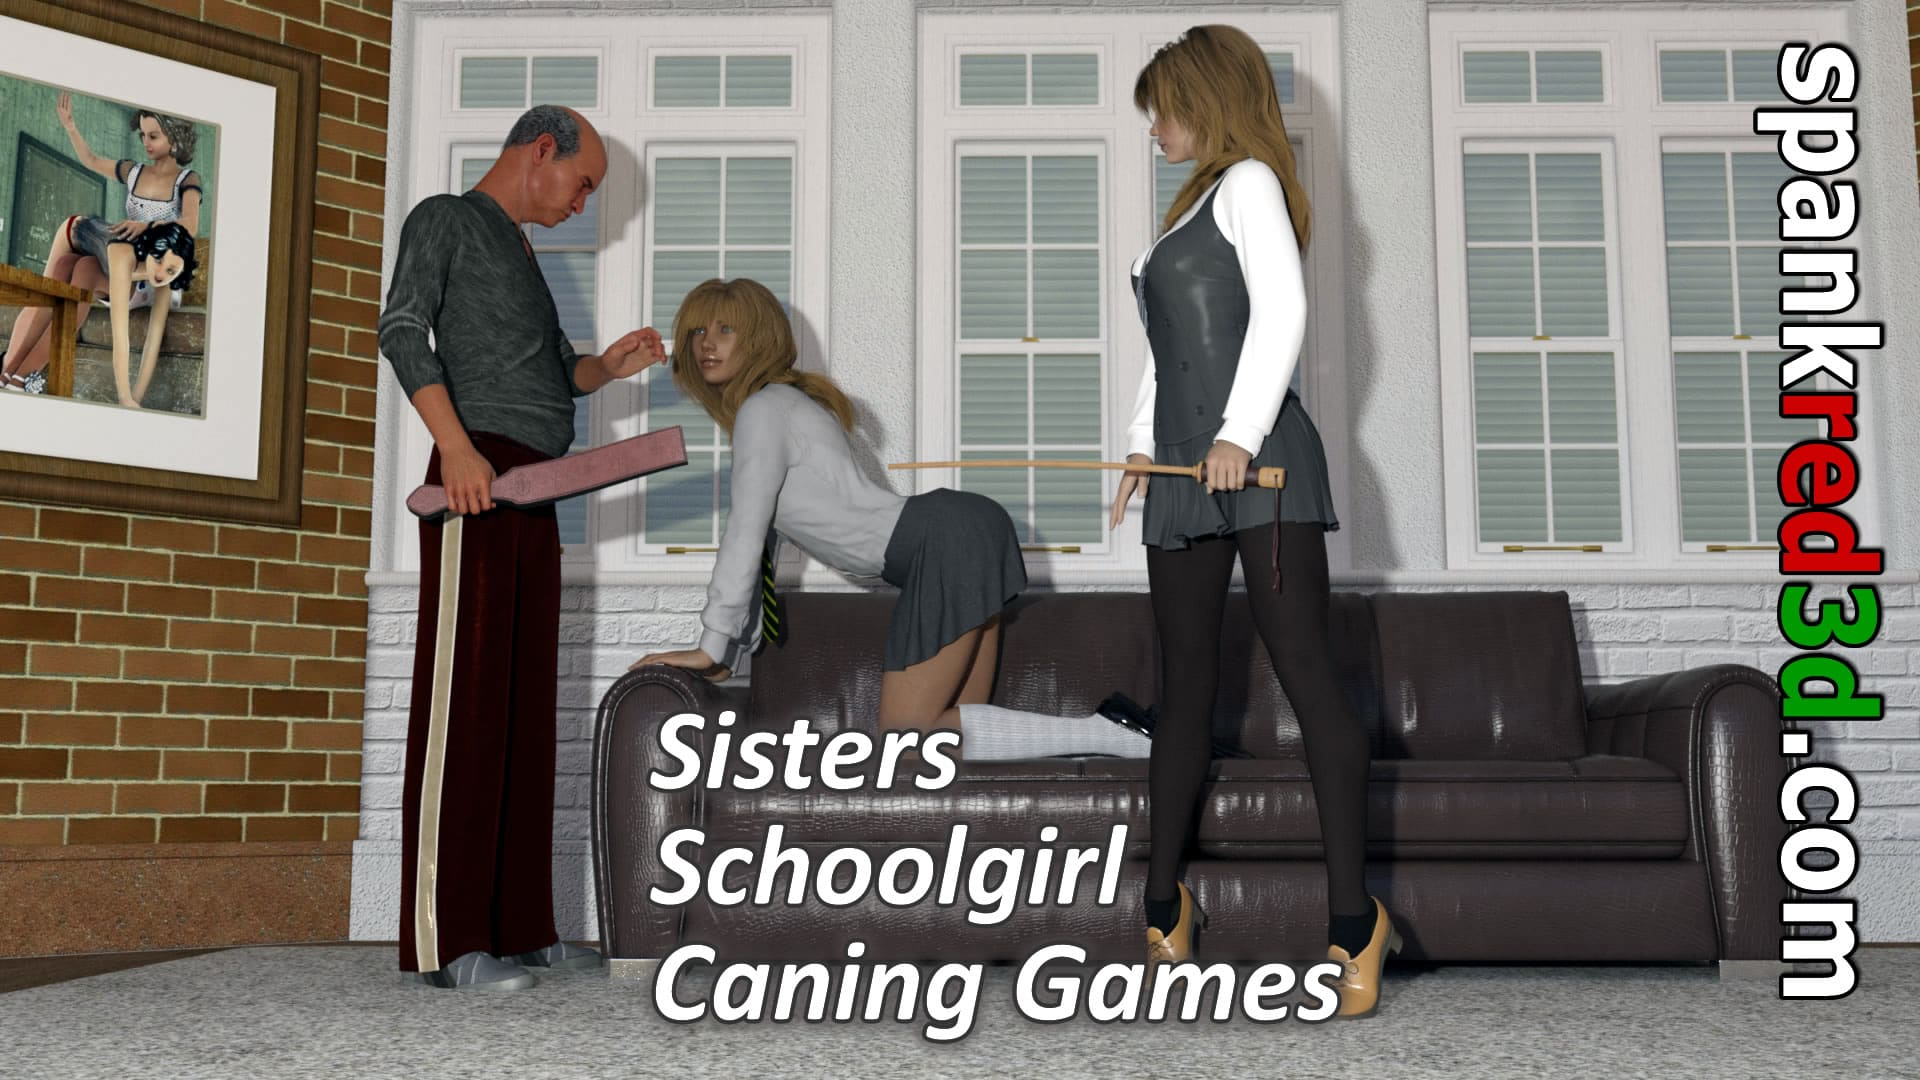 Sisters schoolgirl caning games